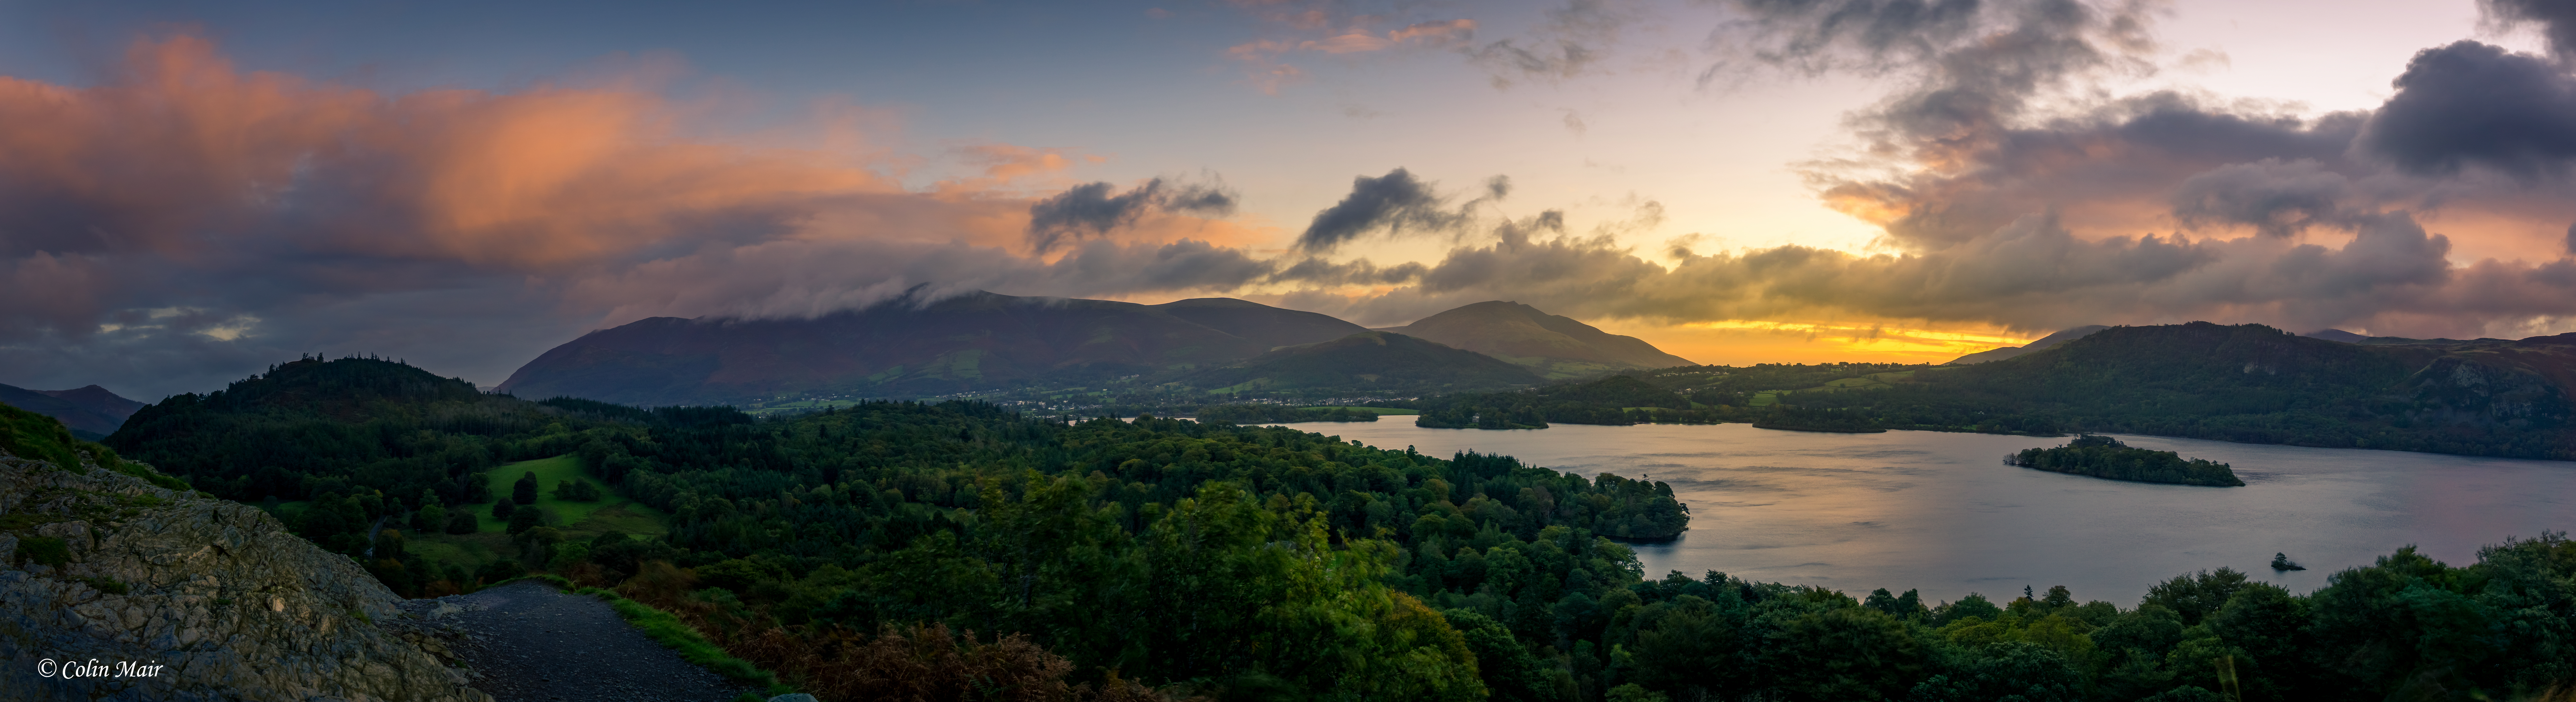 Sunrise over Derwent Water - 2017-10-03rd, Keswick, England, UK